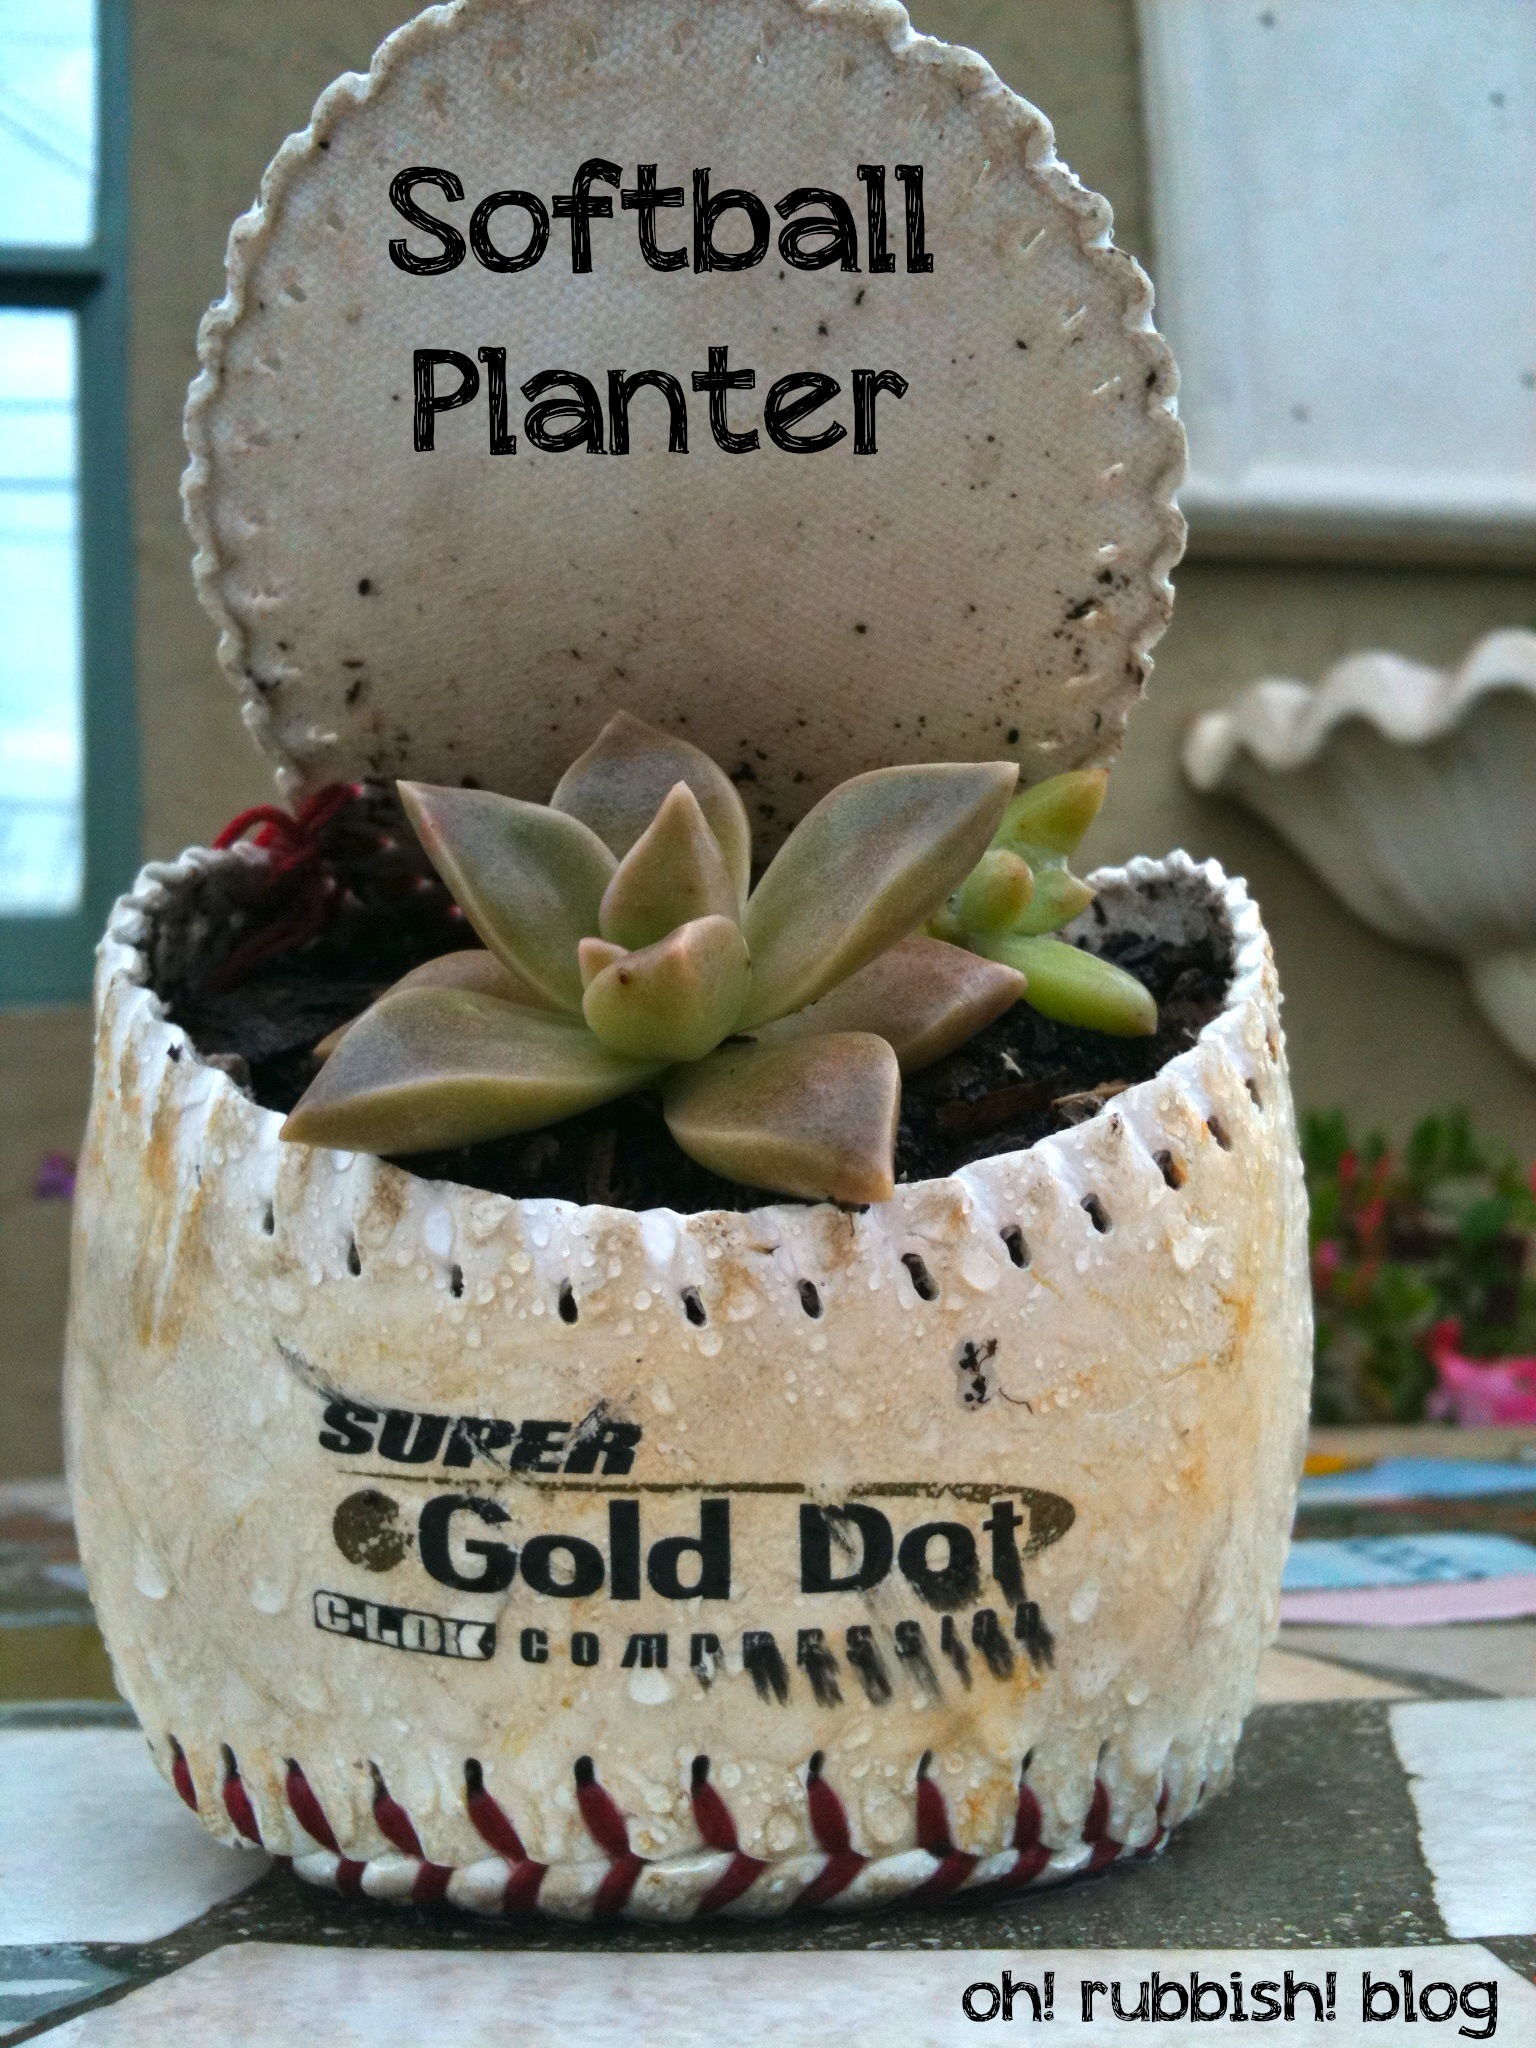 Softball Planter Recycled Garden Projects Upcycled